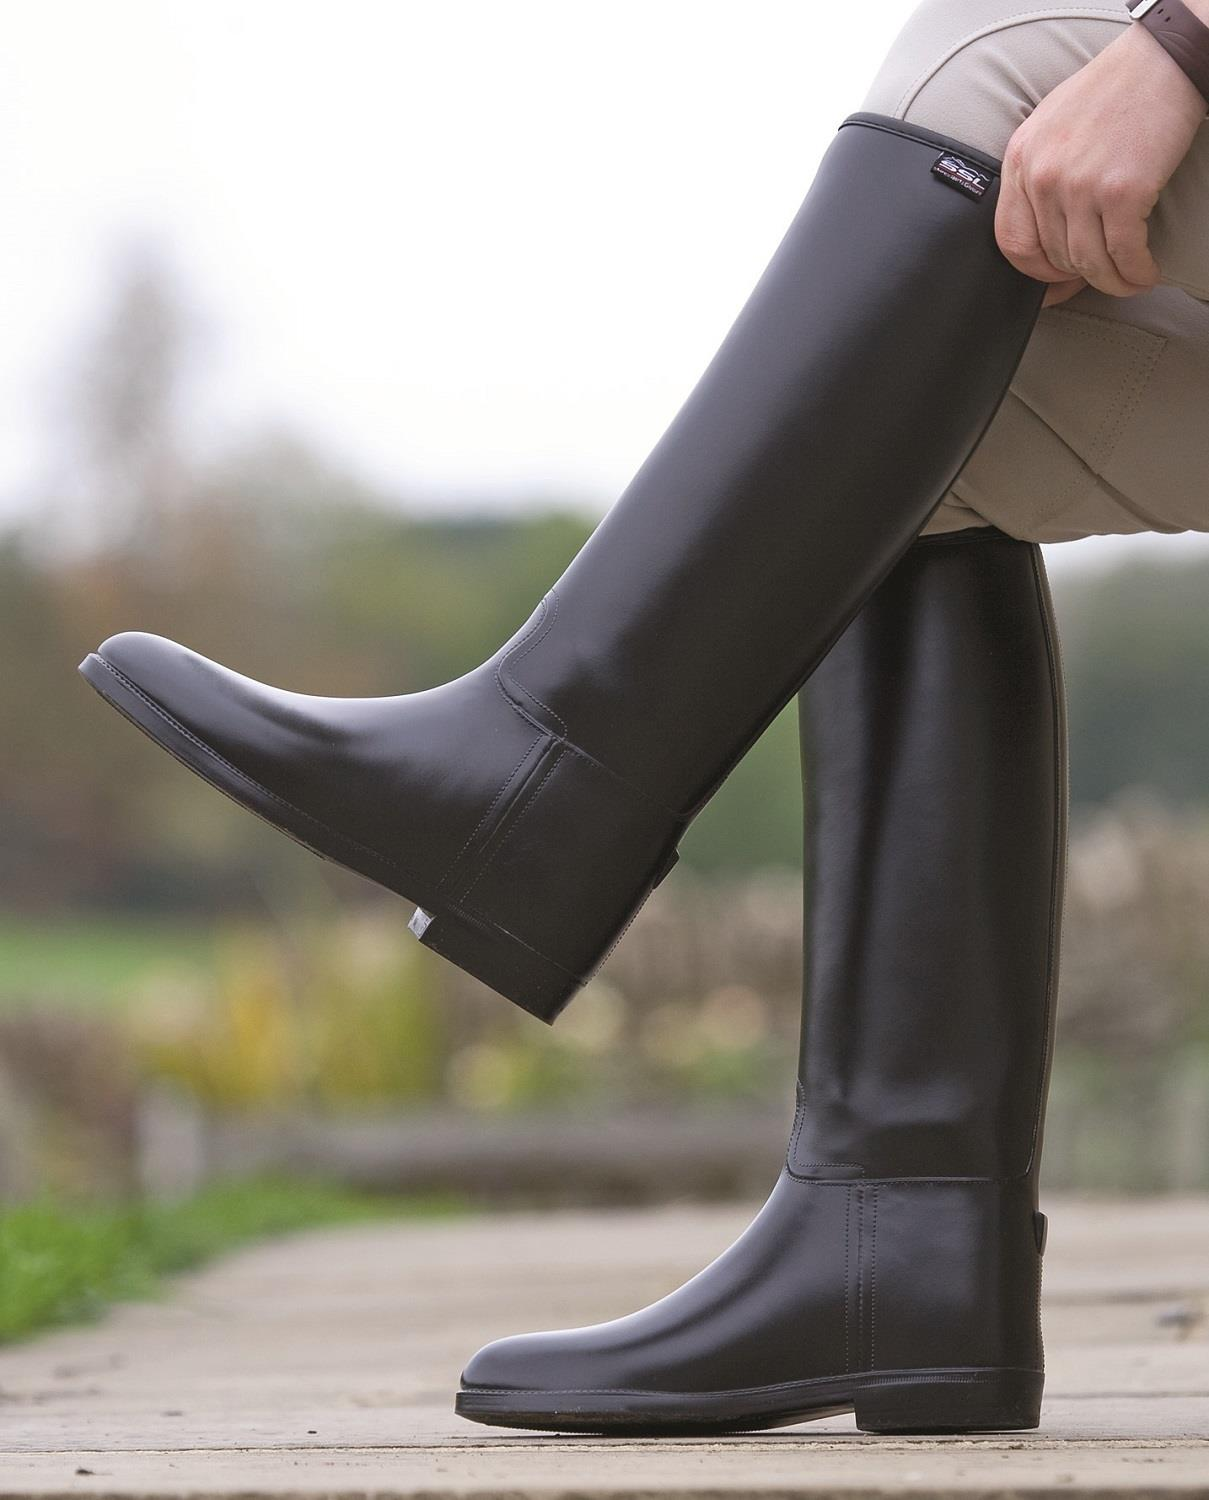 Children's Riding Boots | Jodhpur Boots